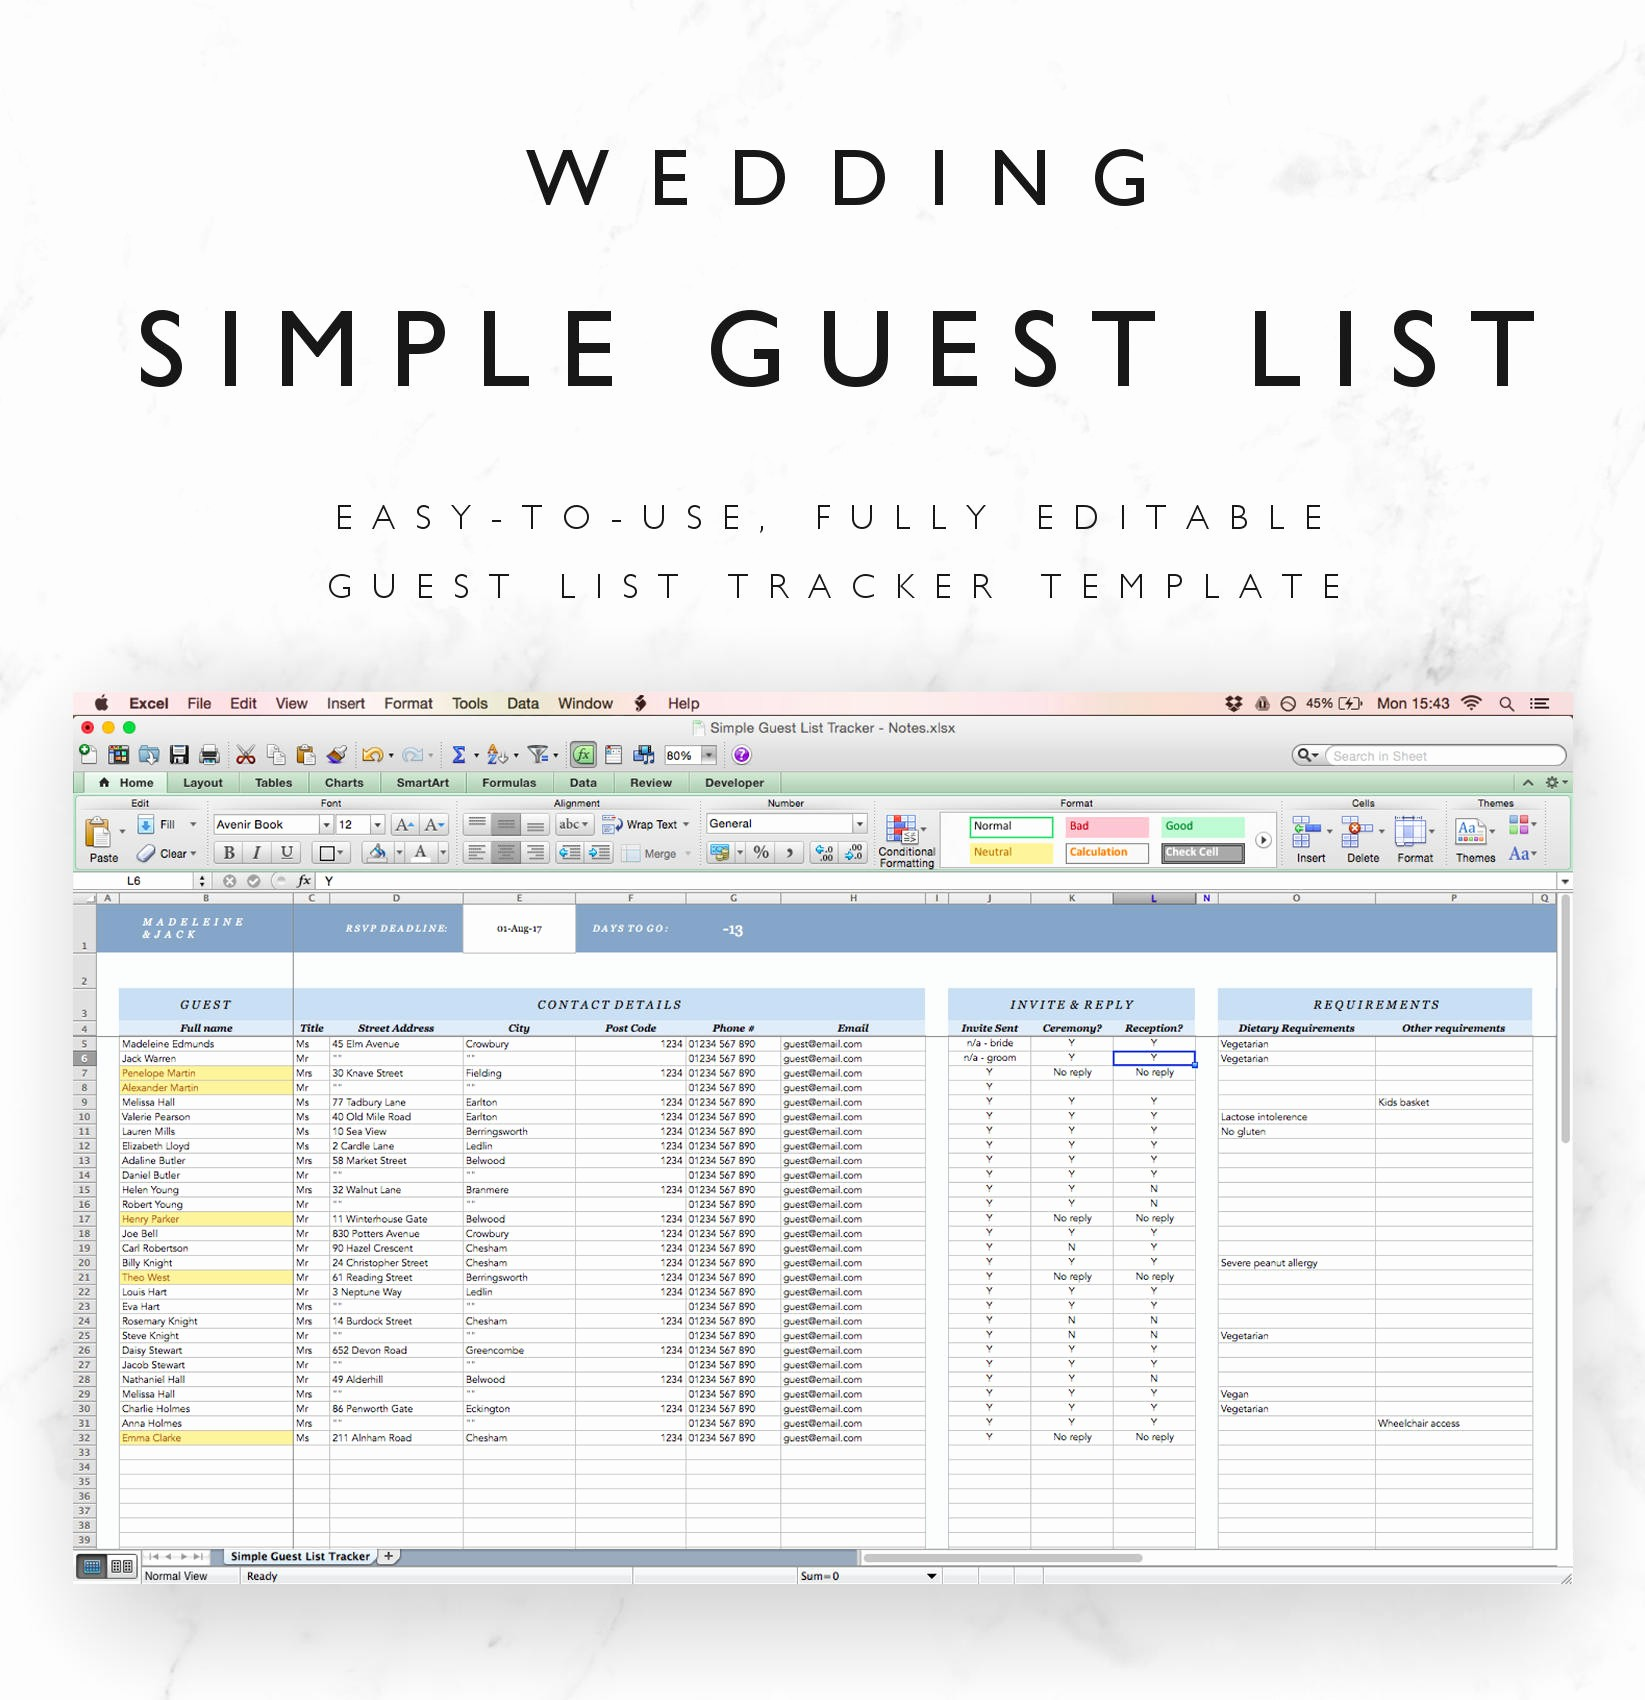 Wedding Guest List Spreadsheet Excel Best Of Wedding Guest List Spreadsheet Wedding Guest List Tracker